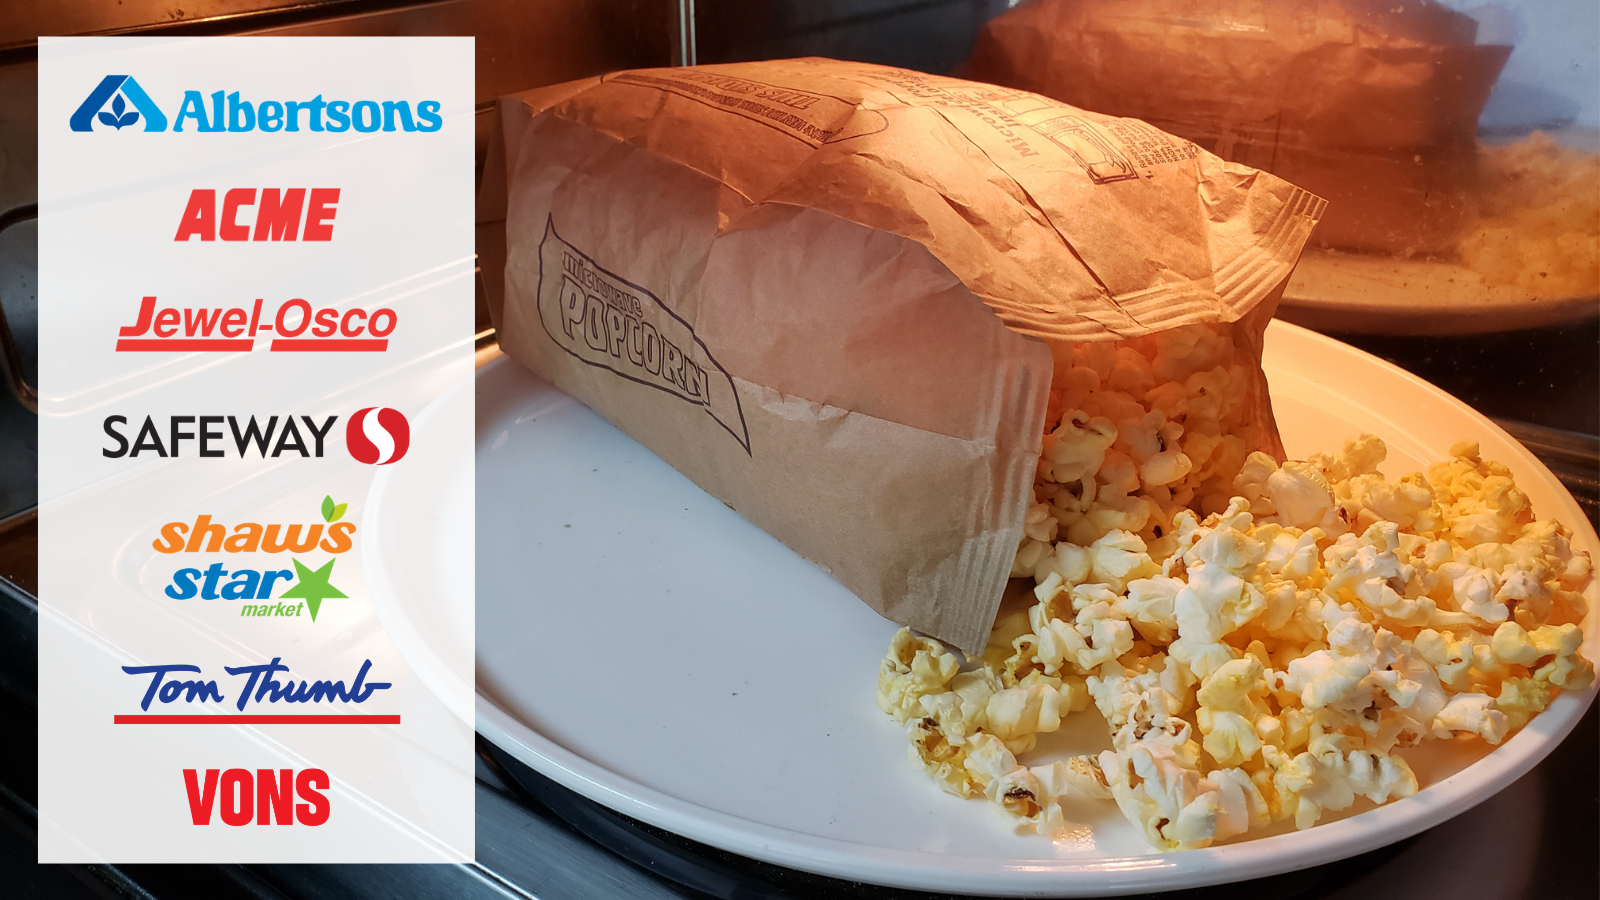 Microwave_popcorn_with_albertsons_logos